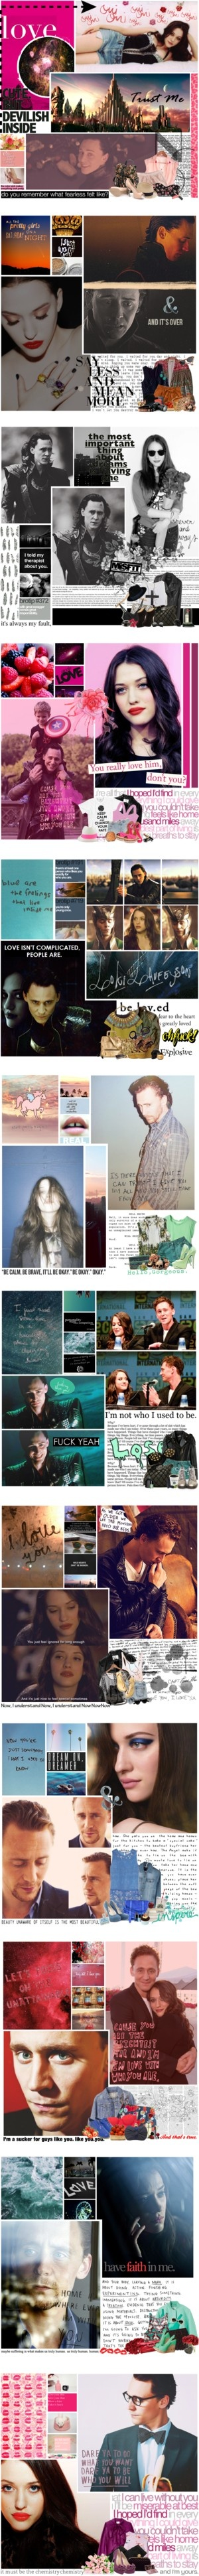 """""""Tom Hiddleston/Kat Dennings"""" by queenb-nyc ❤ liked on Polyvore"""